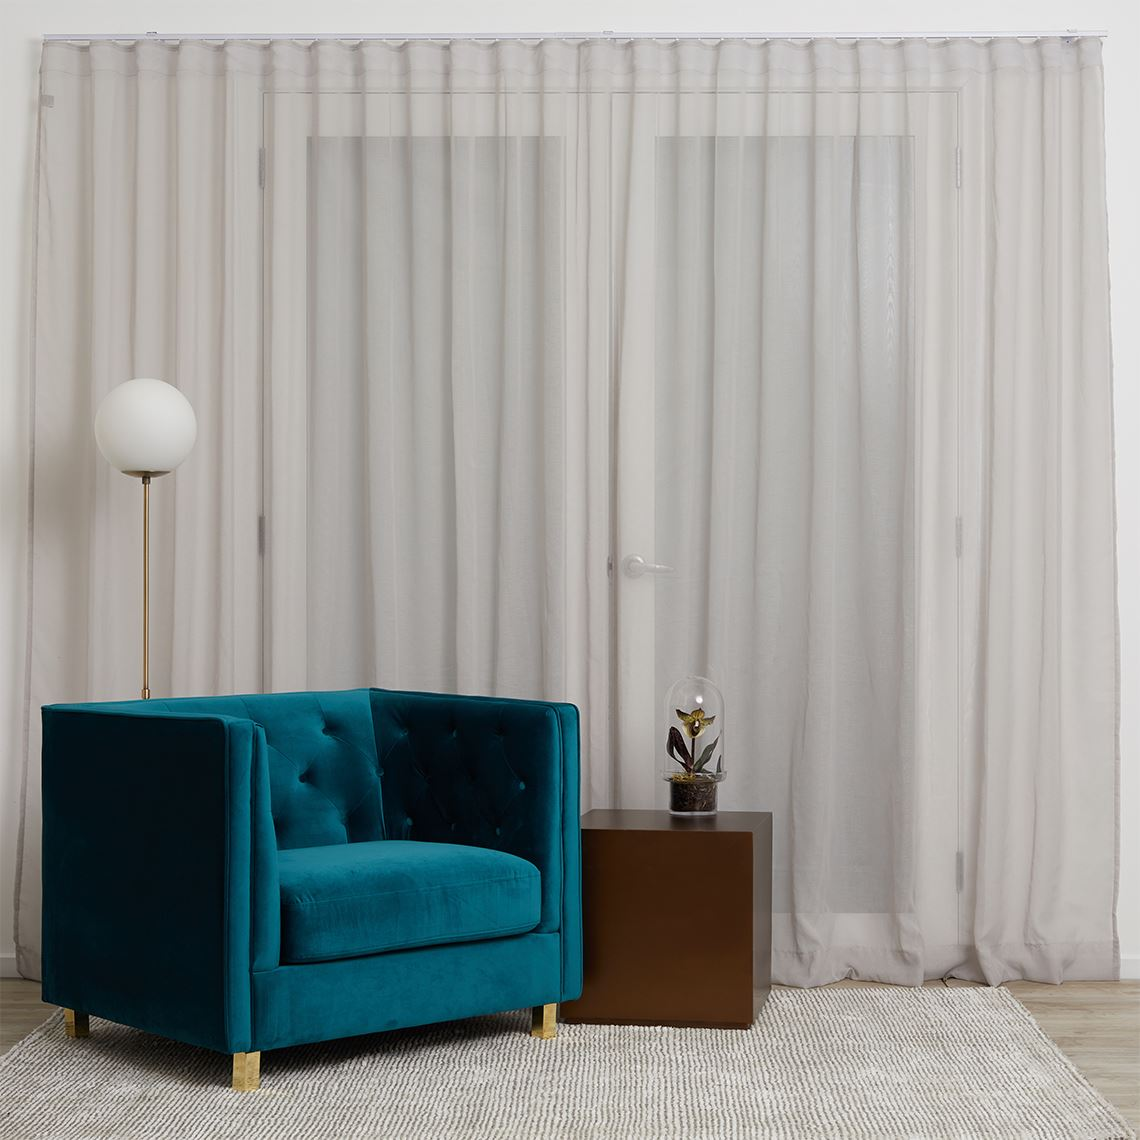 Mineral S-Fold Curtain Size W 485cm x D 1cm x H 280cm in Silver 100% Polyester Freedom by Freedom, a Curtains for sale on Style Sourcebook